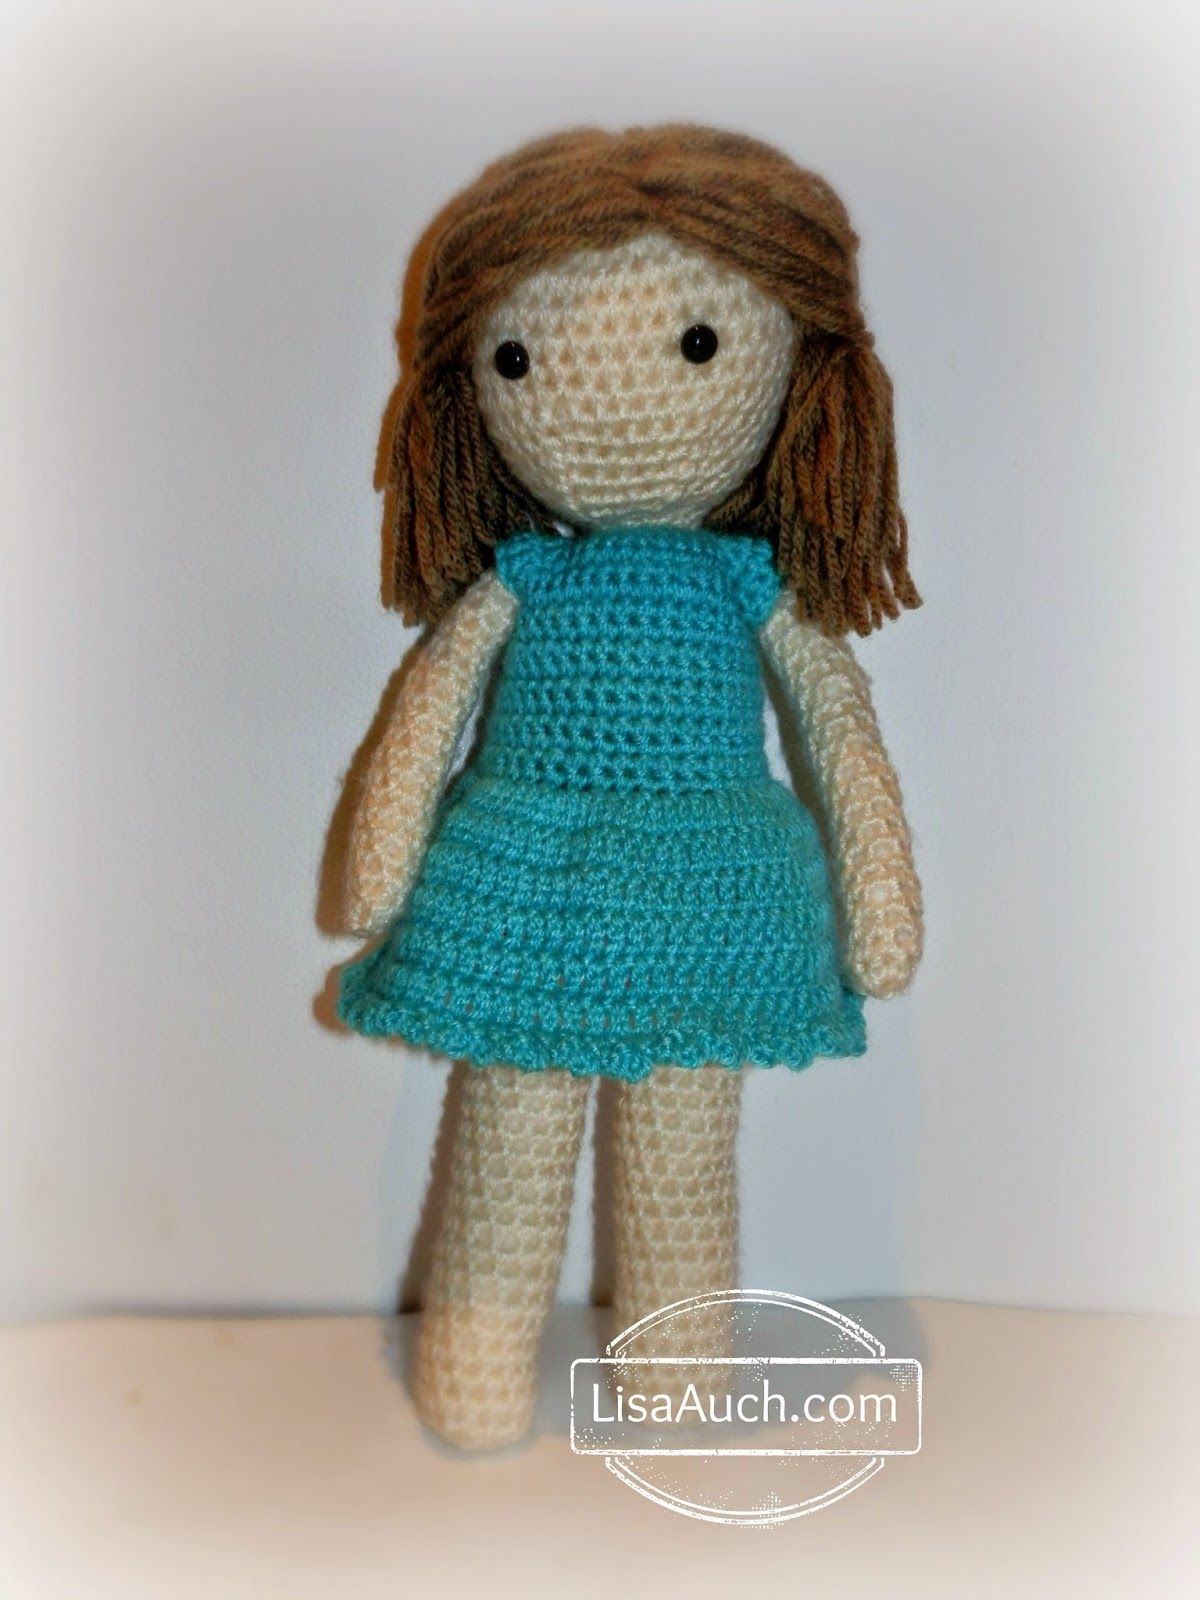 Basic Crochet Doll Pattern Free : In the Blue Little Crochet Dolls Dress Free Pattern FREE ...